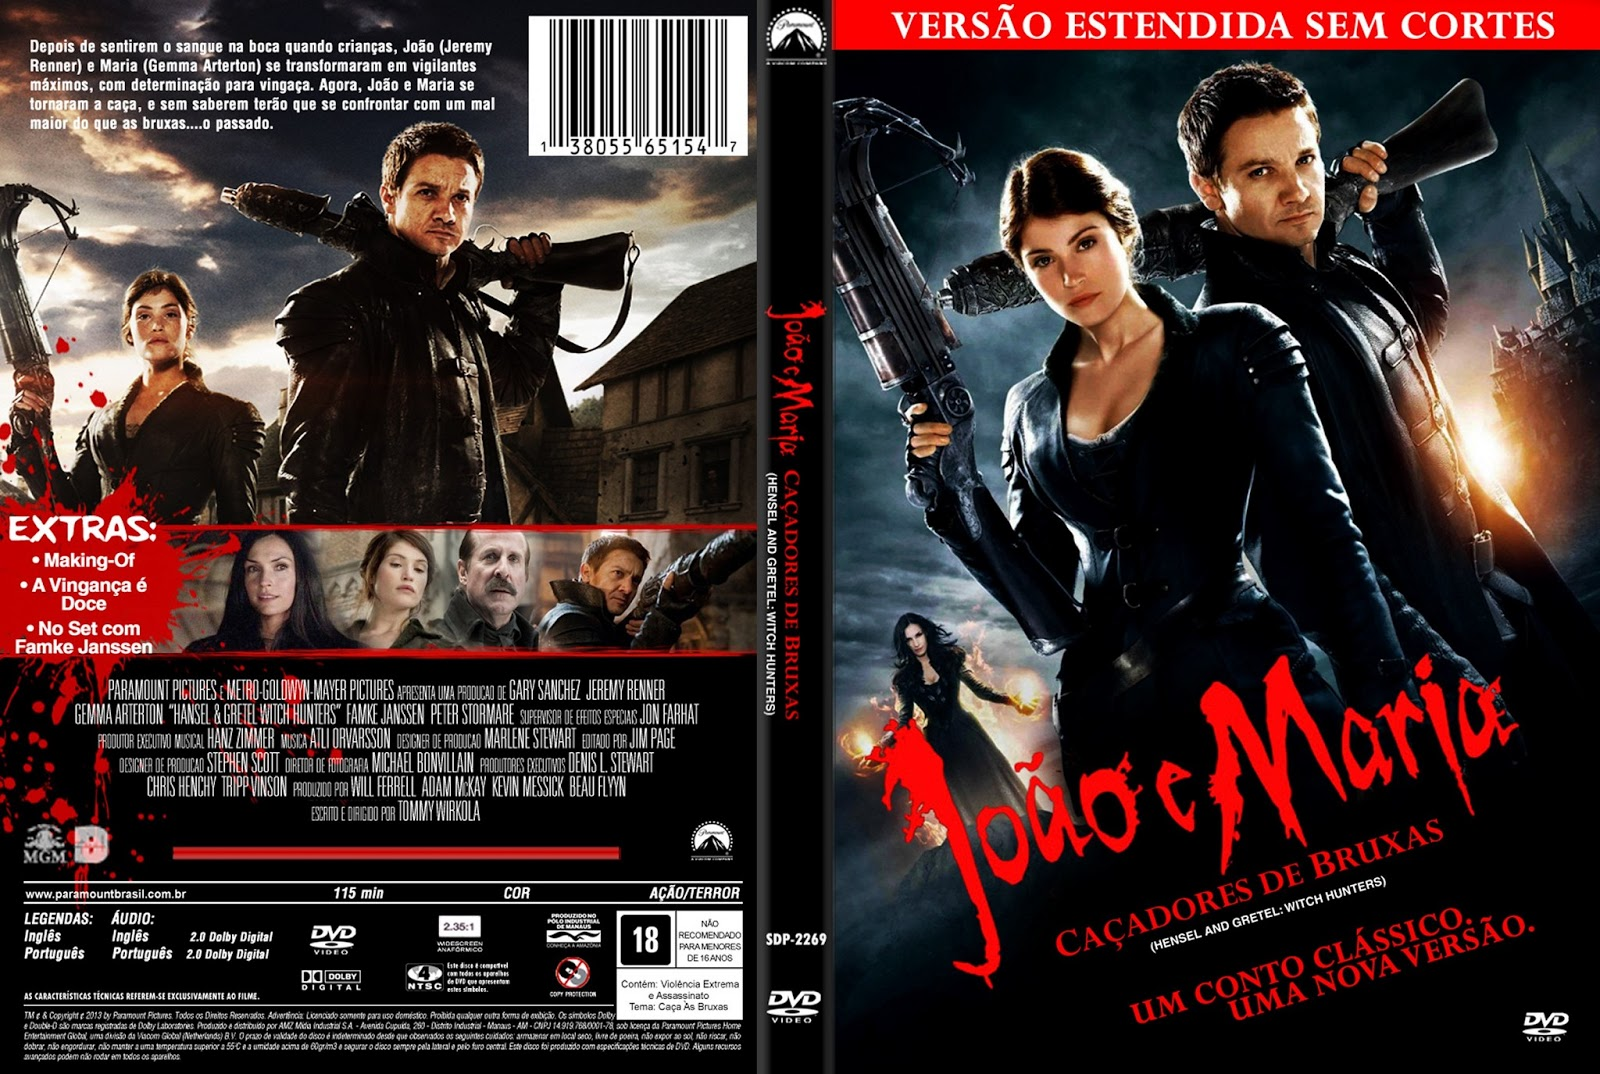 JOÃO E MARIA – CAÇADORES DE BRUXAS -  Mega Download Torrent